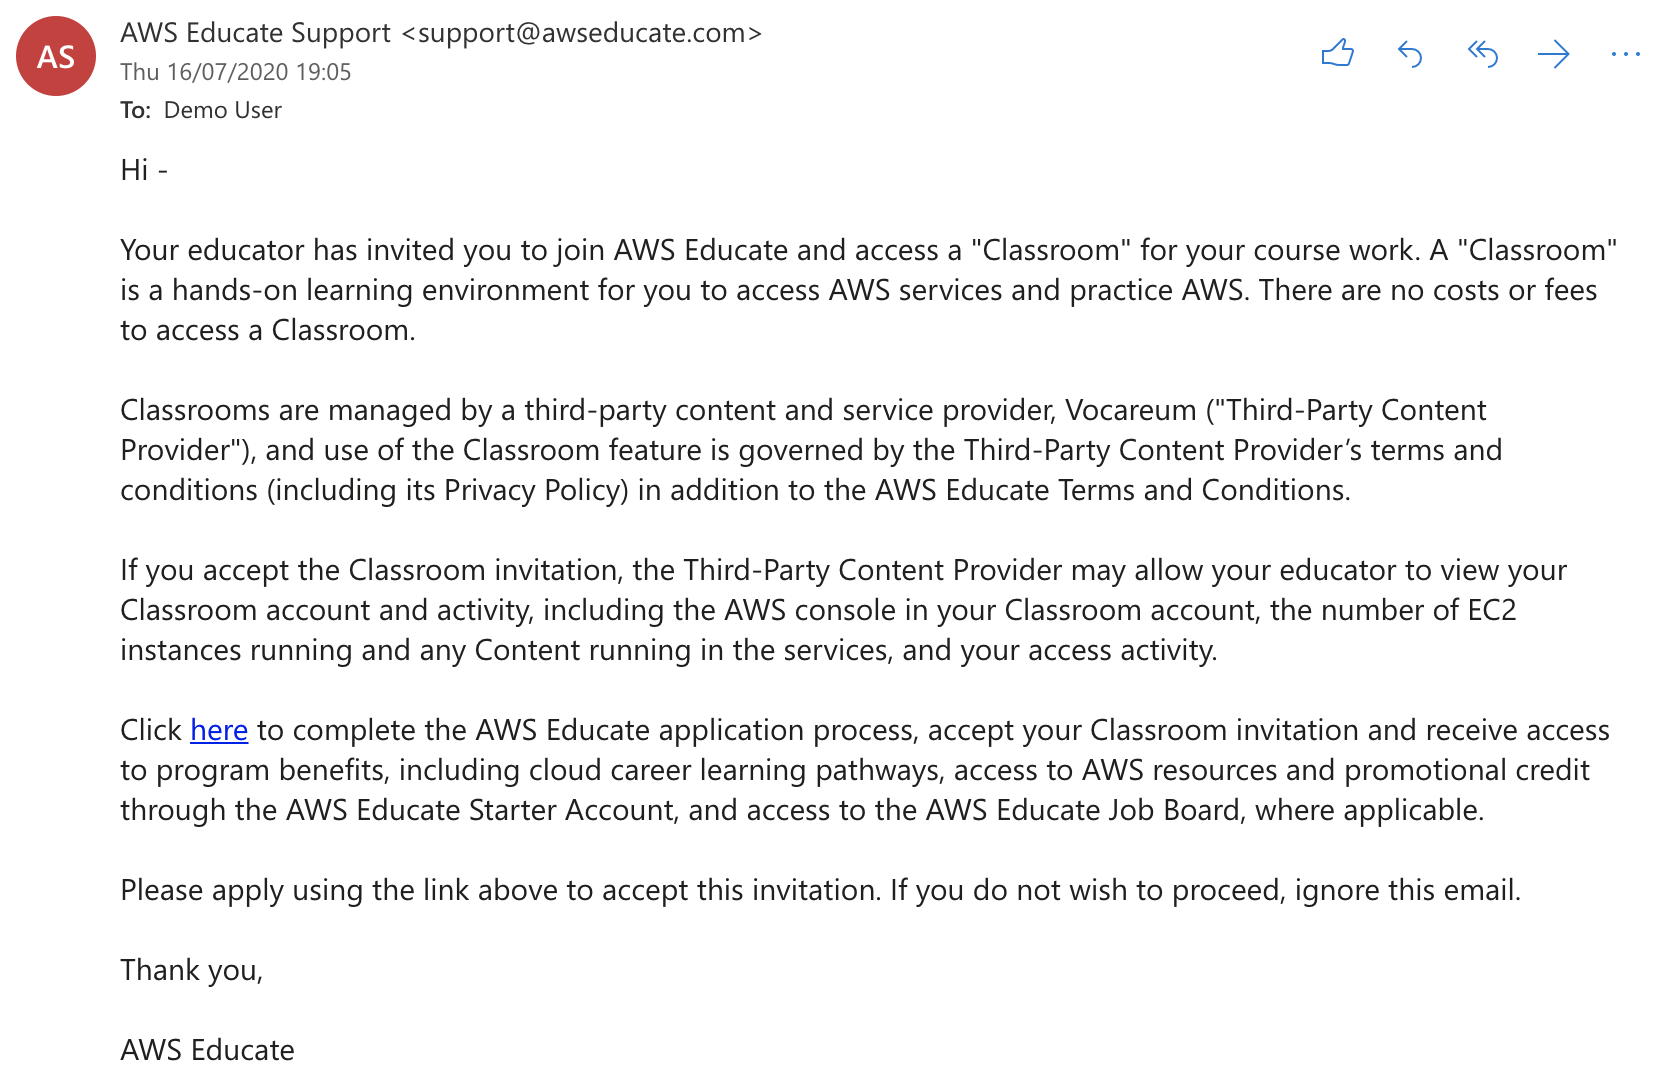 Email from support@awseducate.com